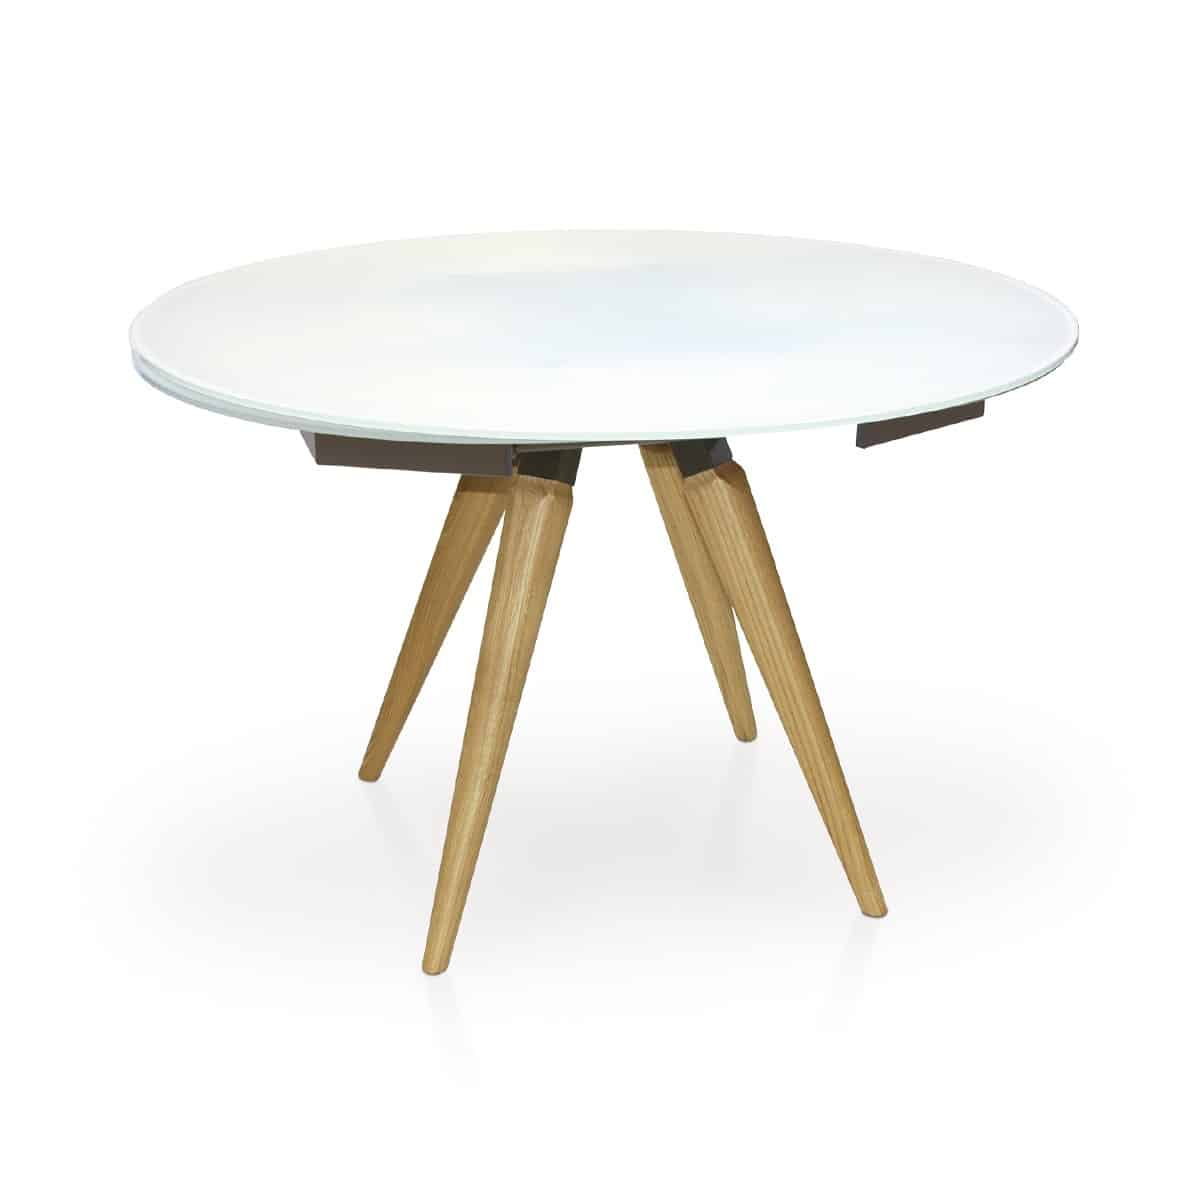 Myles extending dining table from peressini mia stanza for 10 dining table